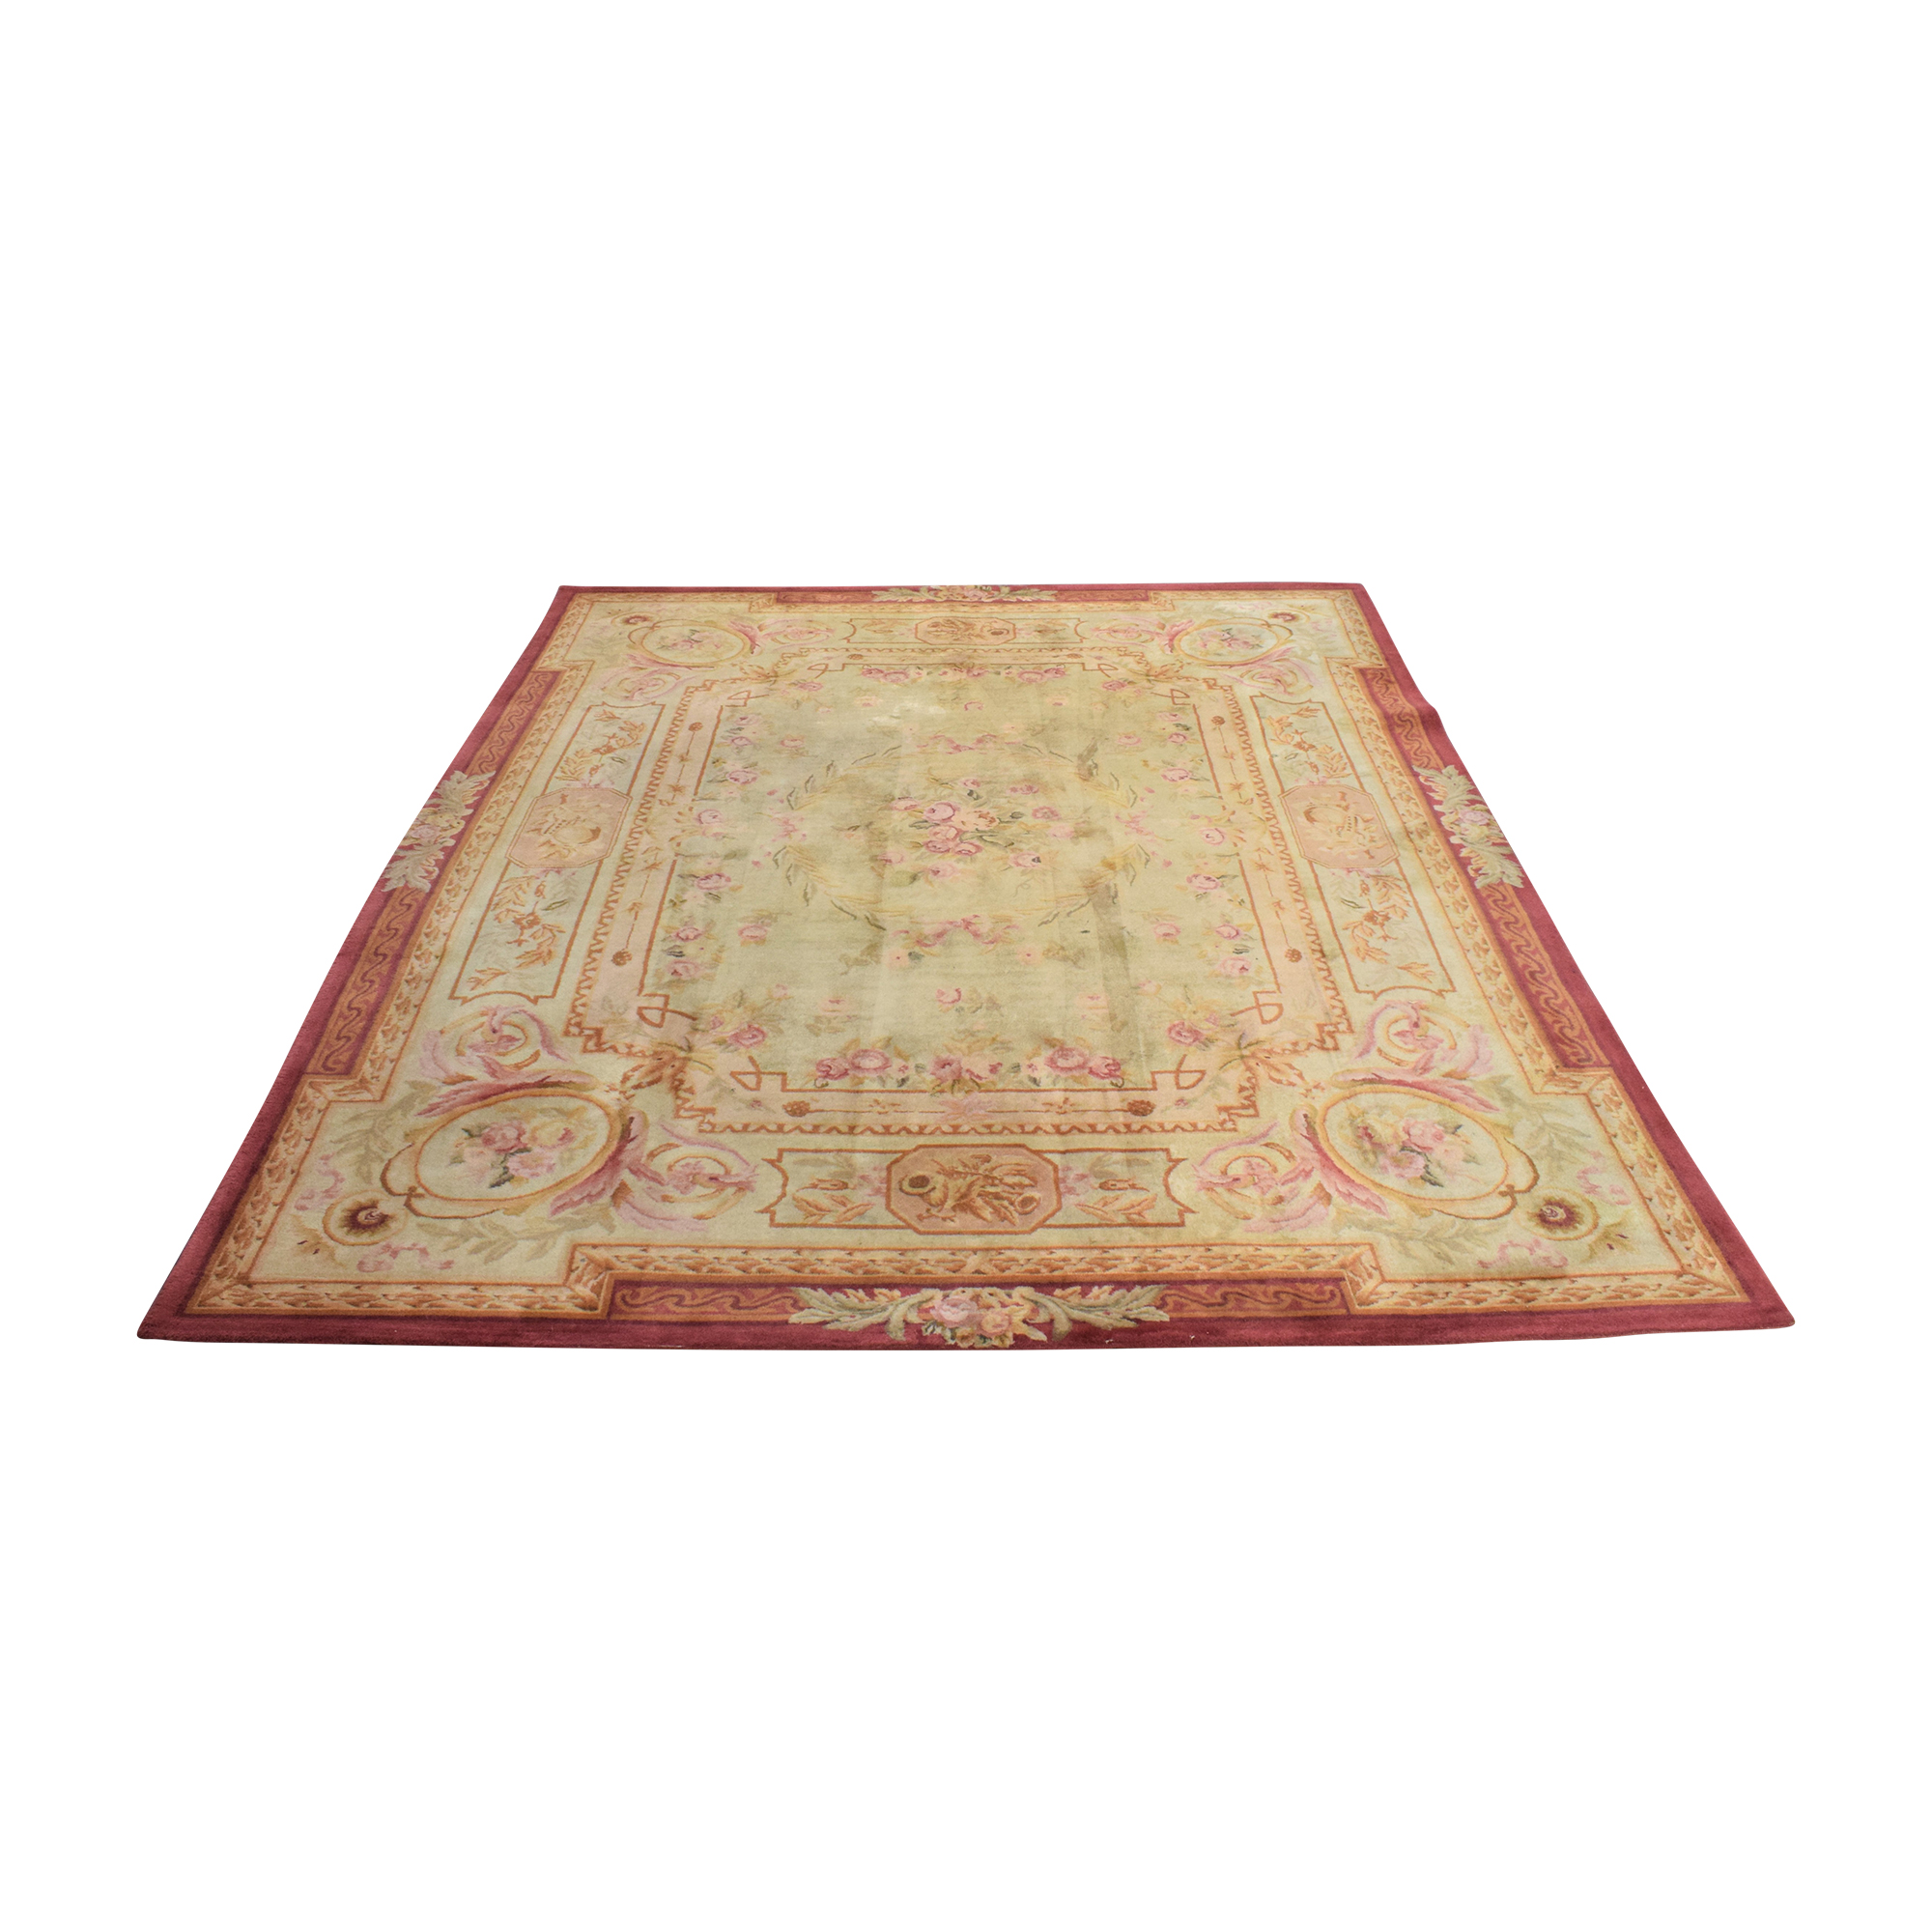 ABC Carpet & Home ABC Carpet & Home Savonery Rug coupon